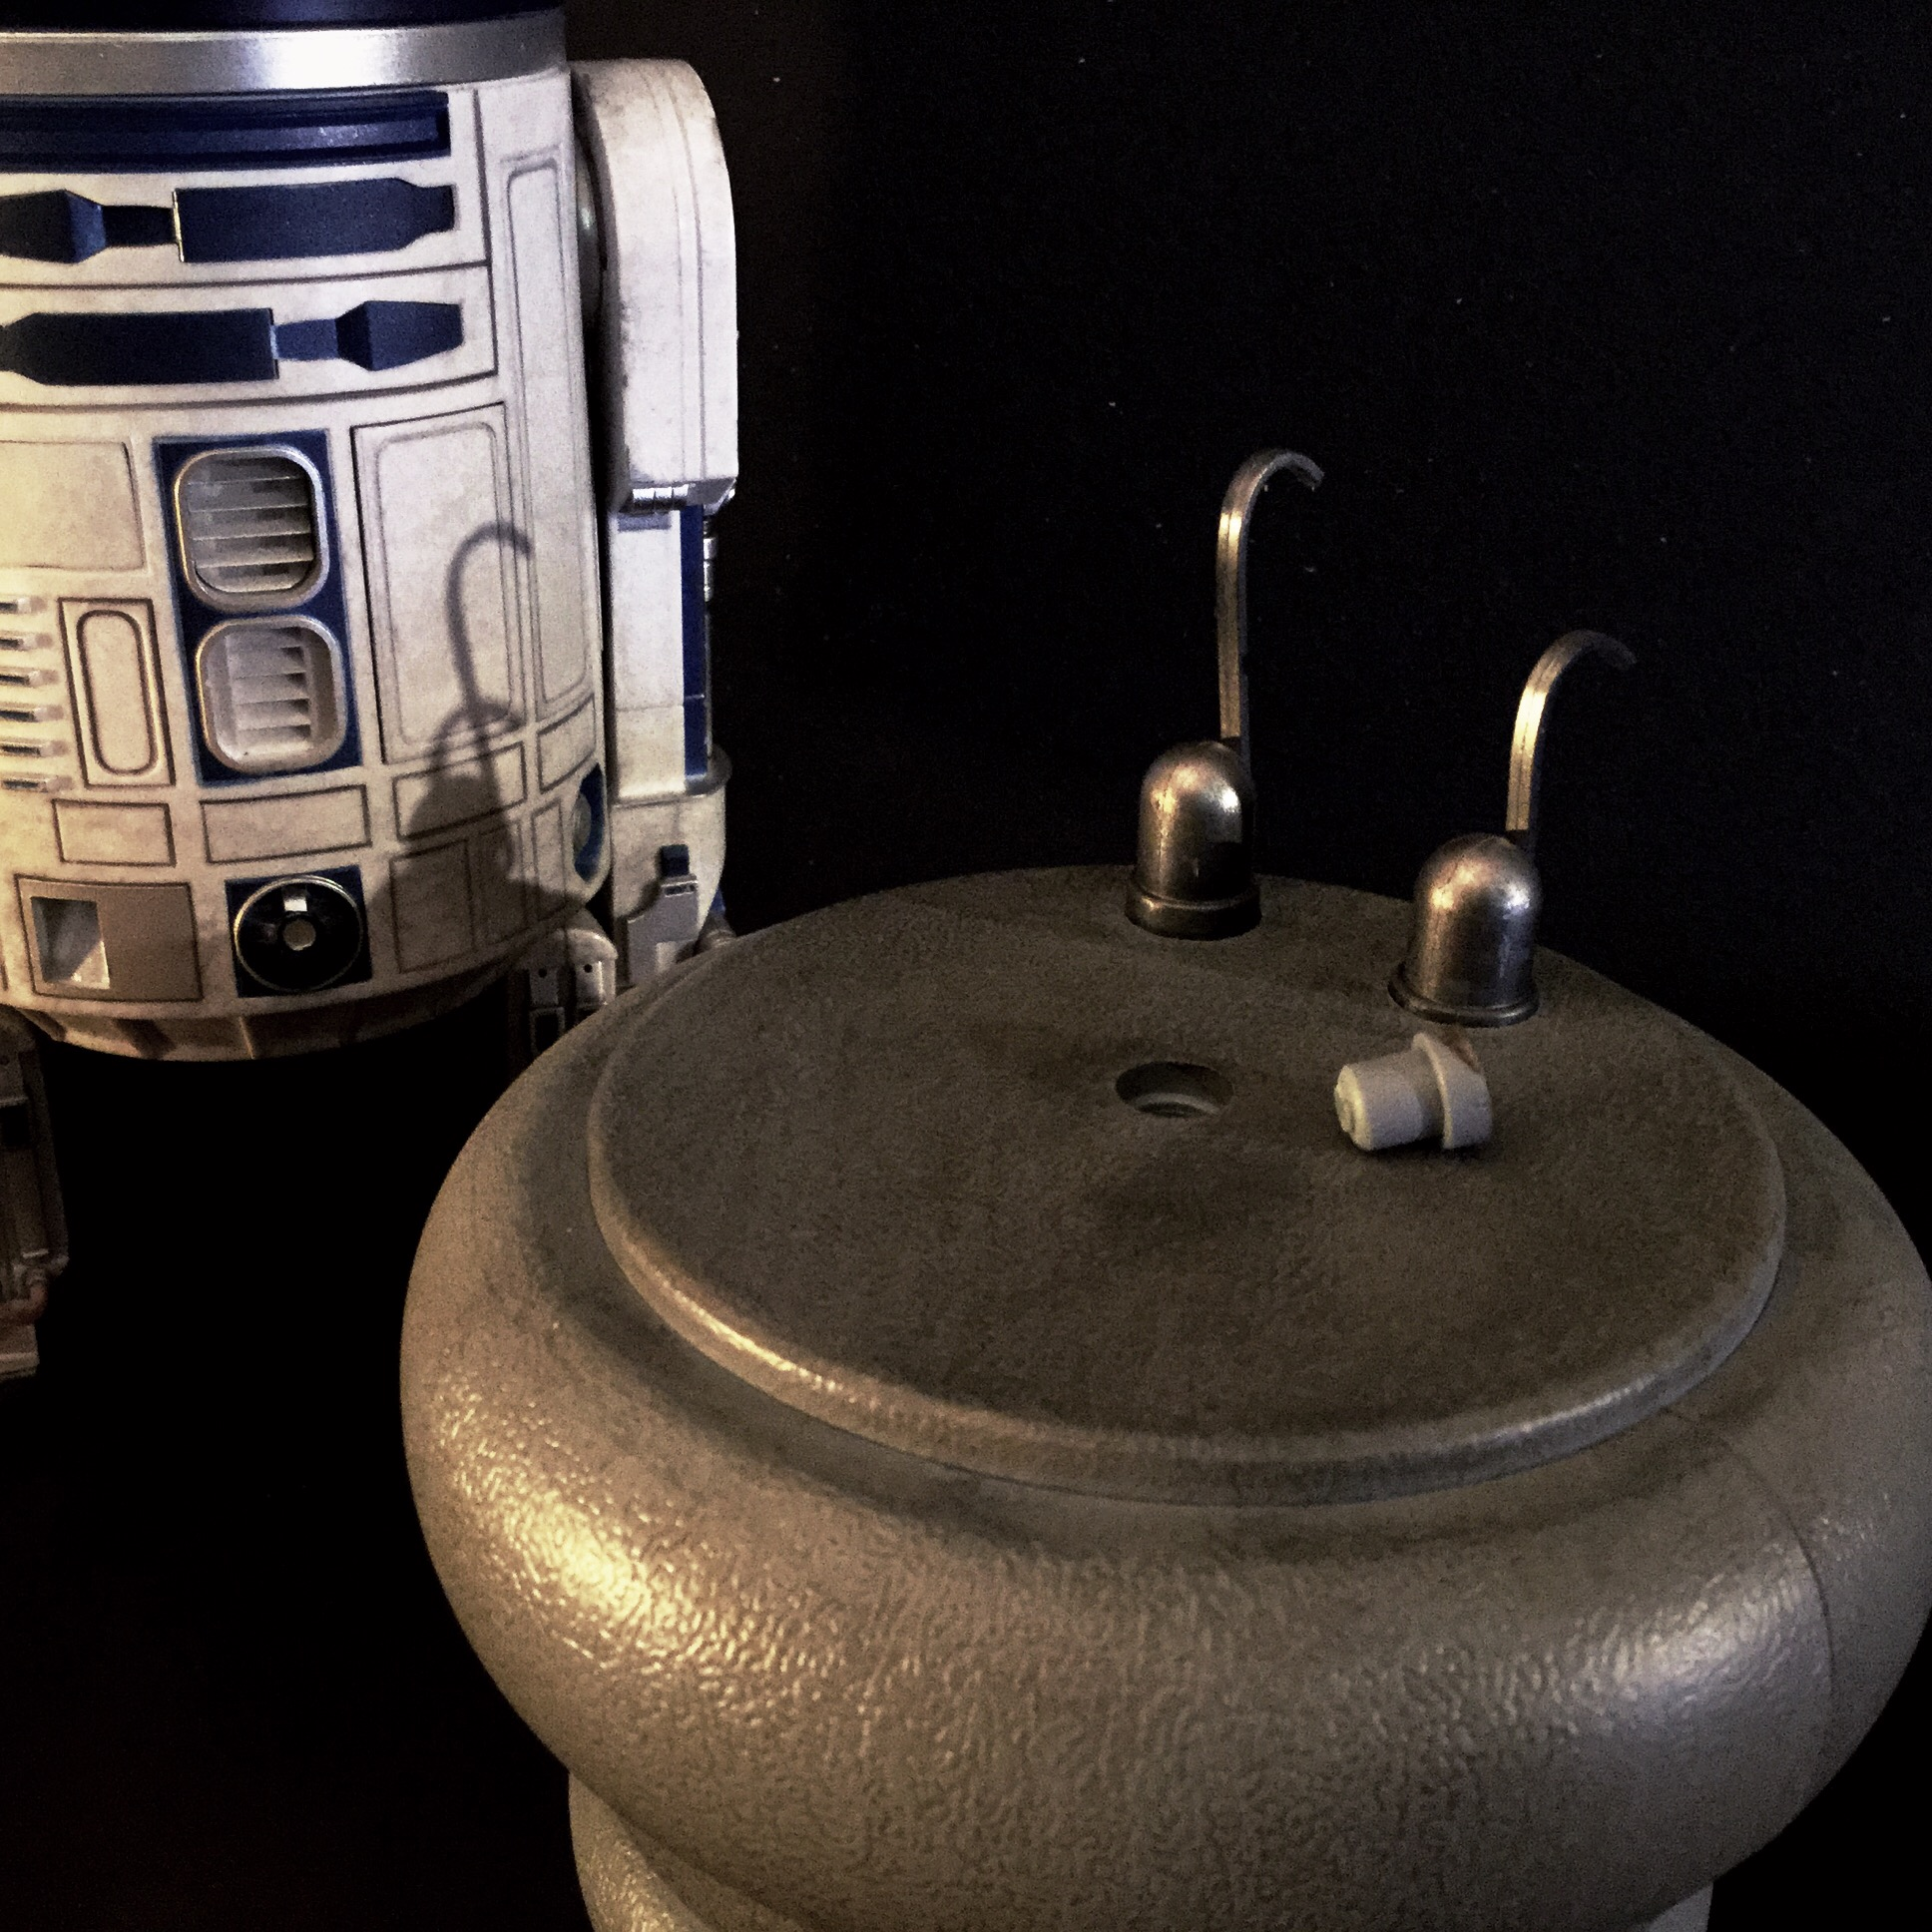 [REVIEW] Star Wars : R2-D2 Deluxe (Sideshow) 16418195046_e67c2aef1f_o